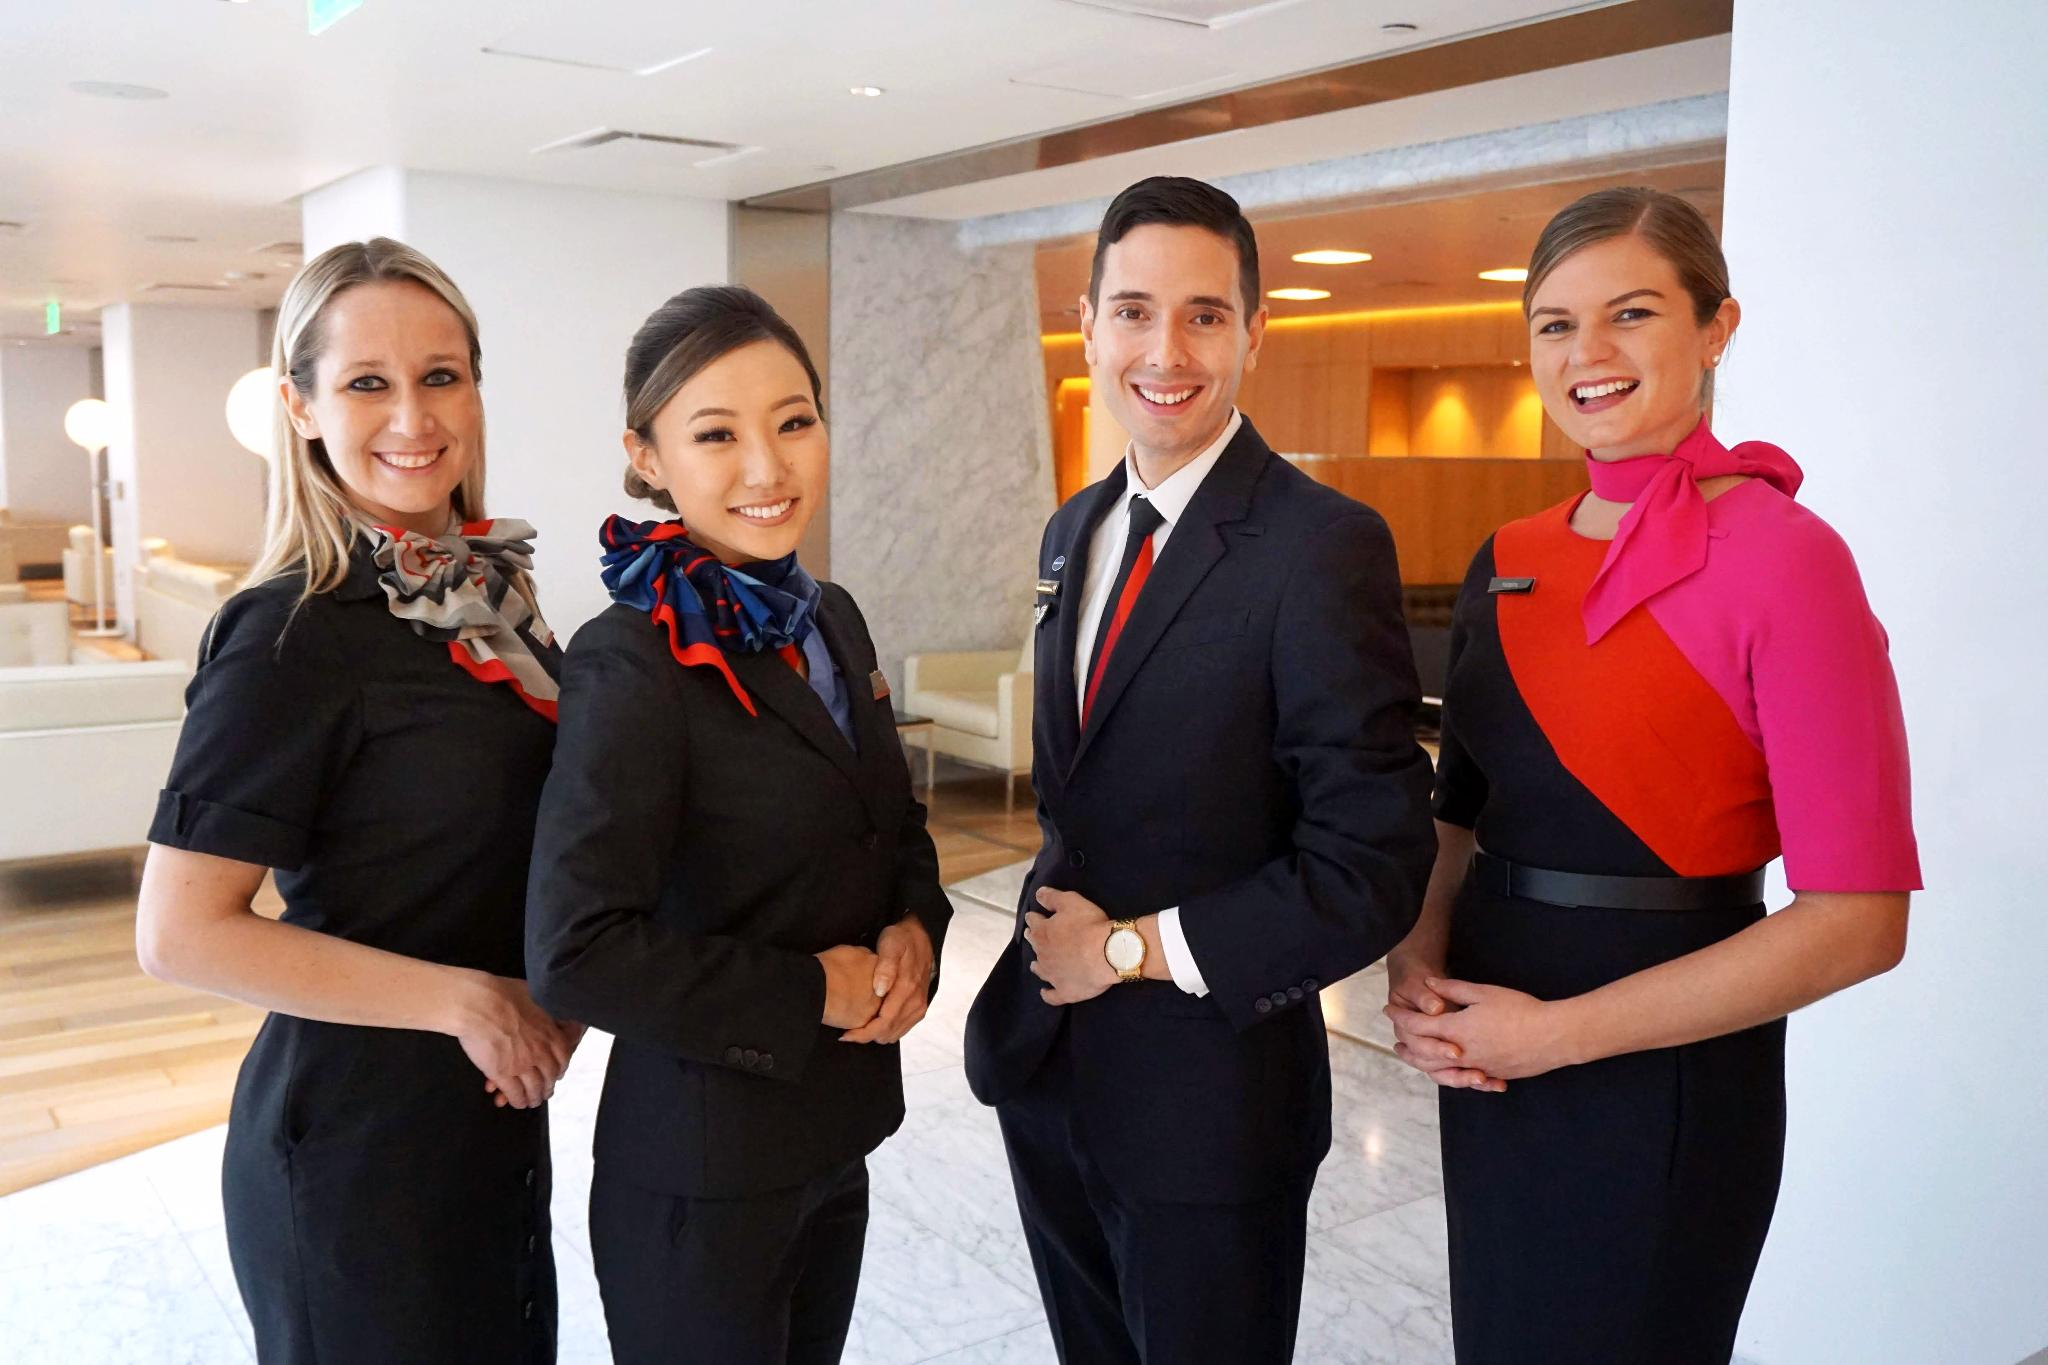 Crew from Qantas and American posing as a happy family (Image via American Airlines)